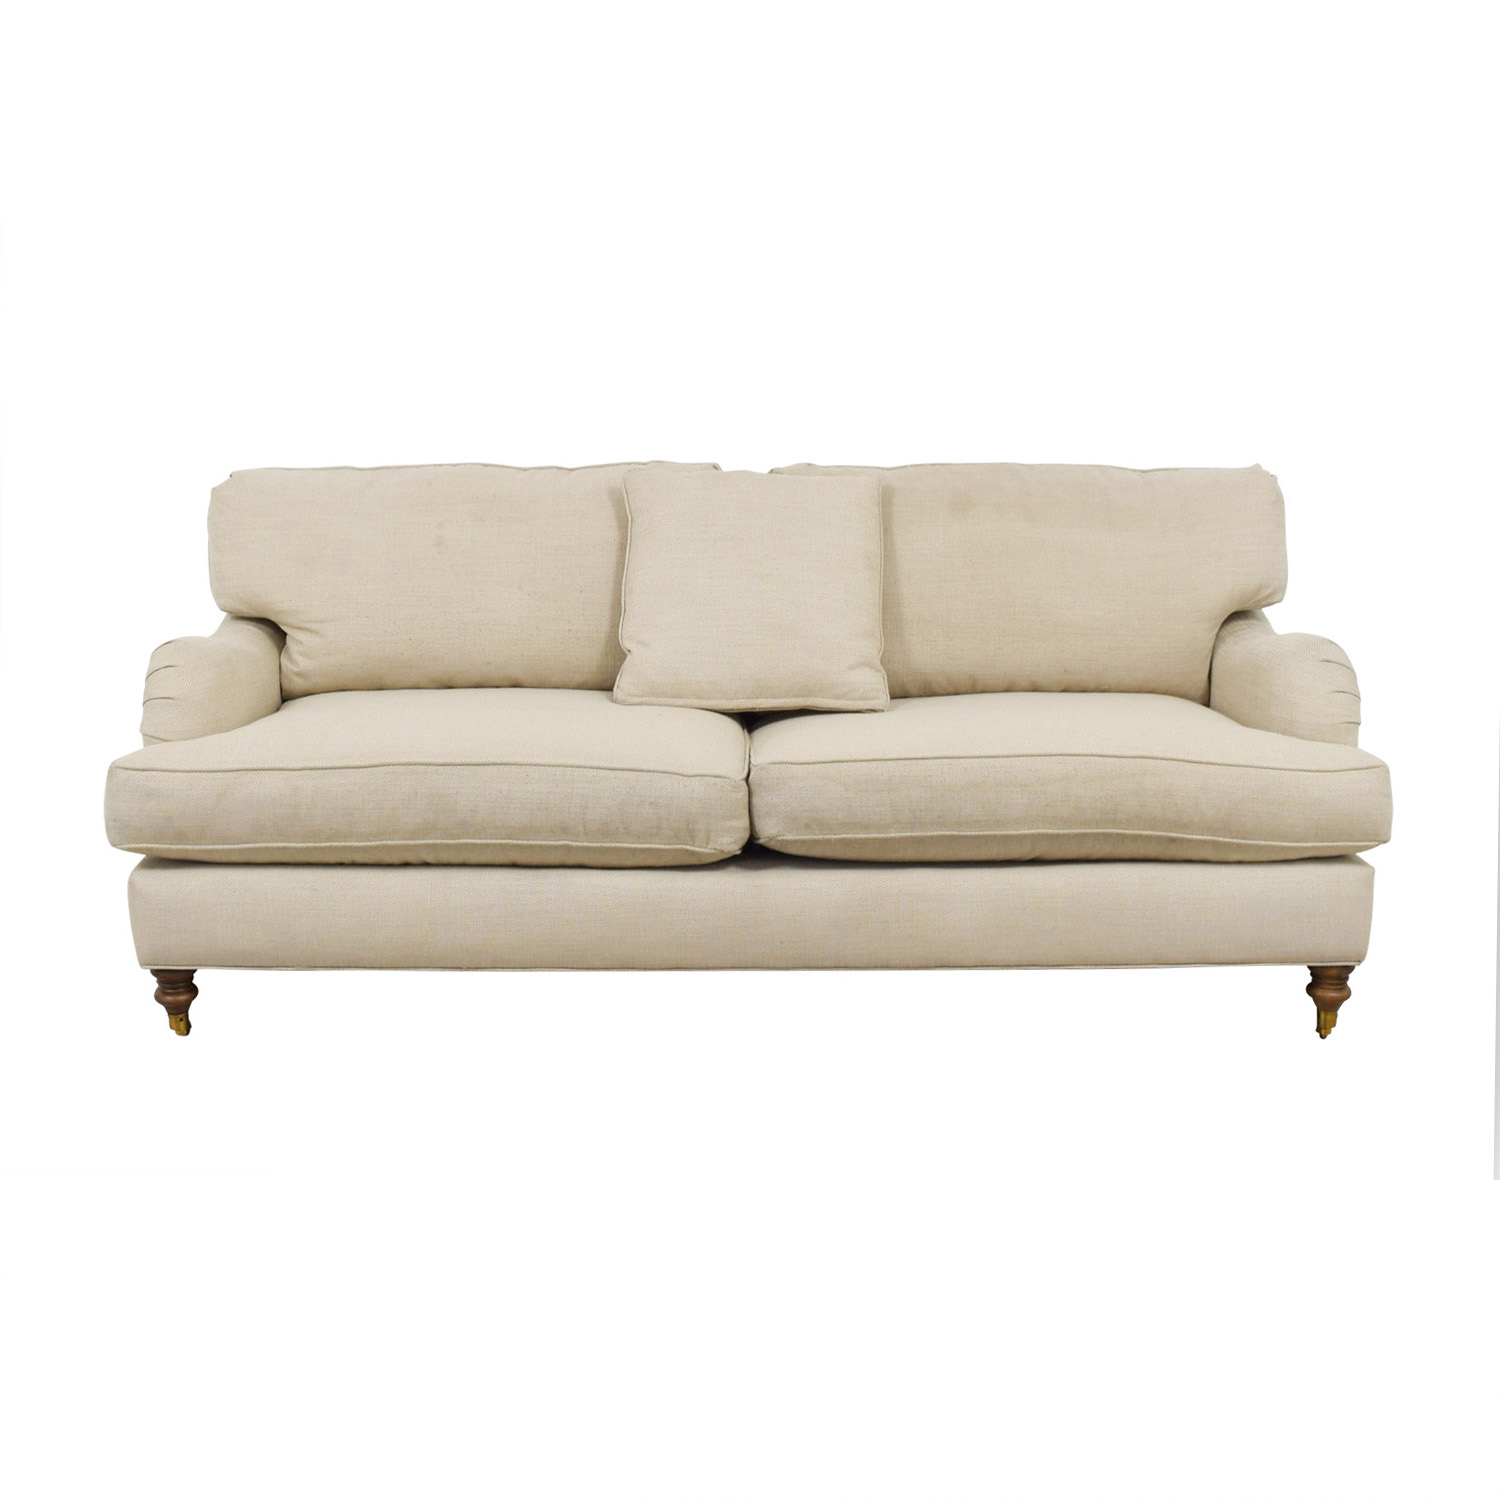 shop Robin Bruce Brooke Natural Roll-Arm Sofa Robin Bruce Sofas